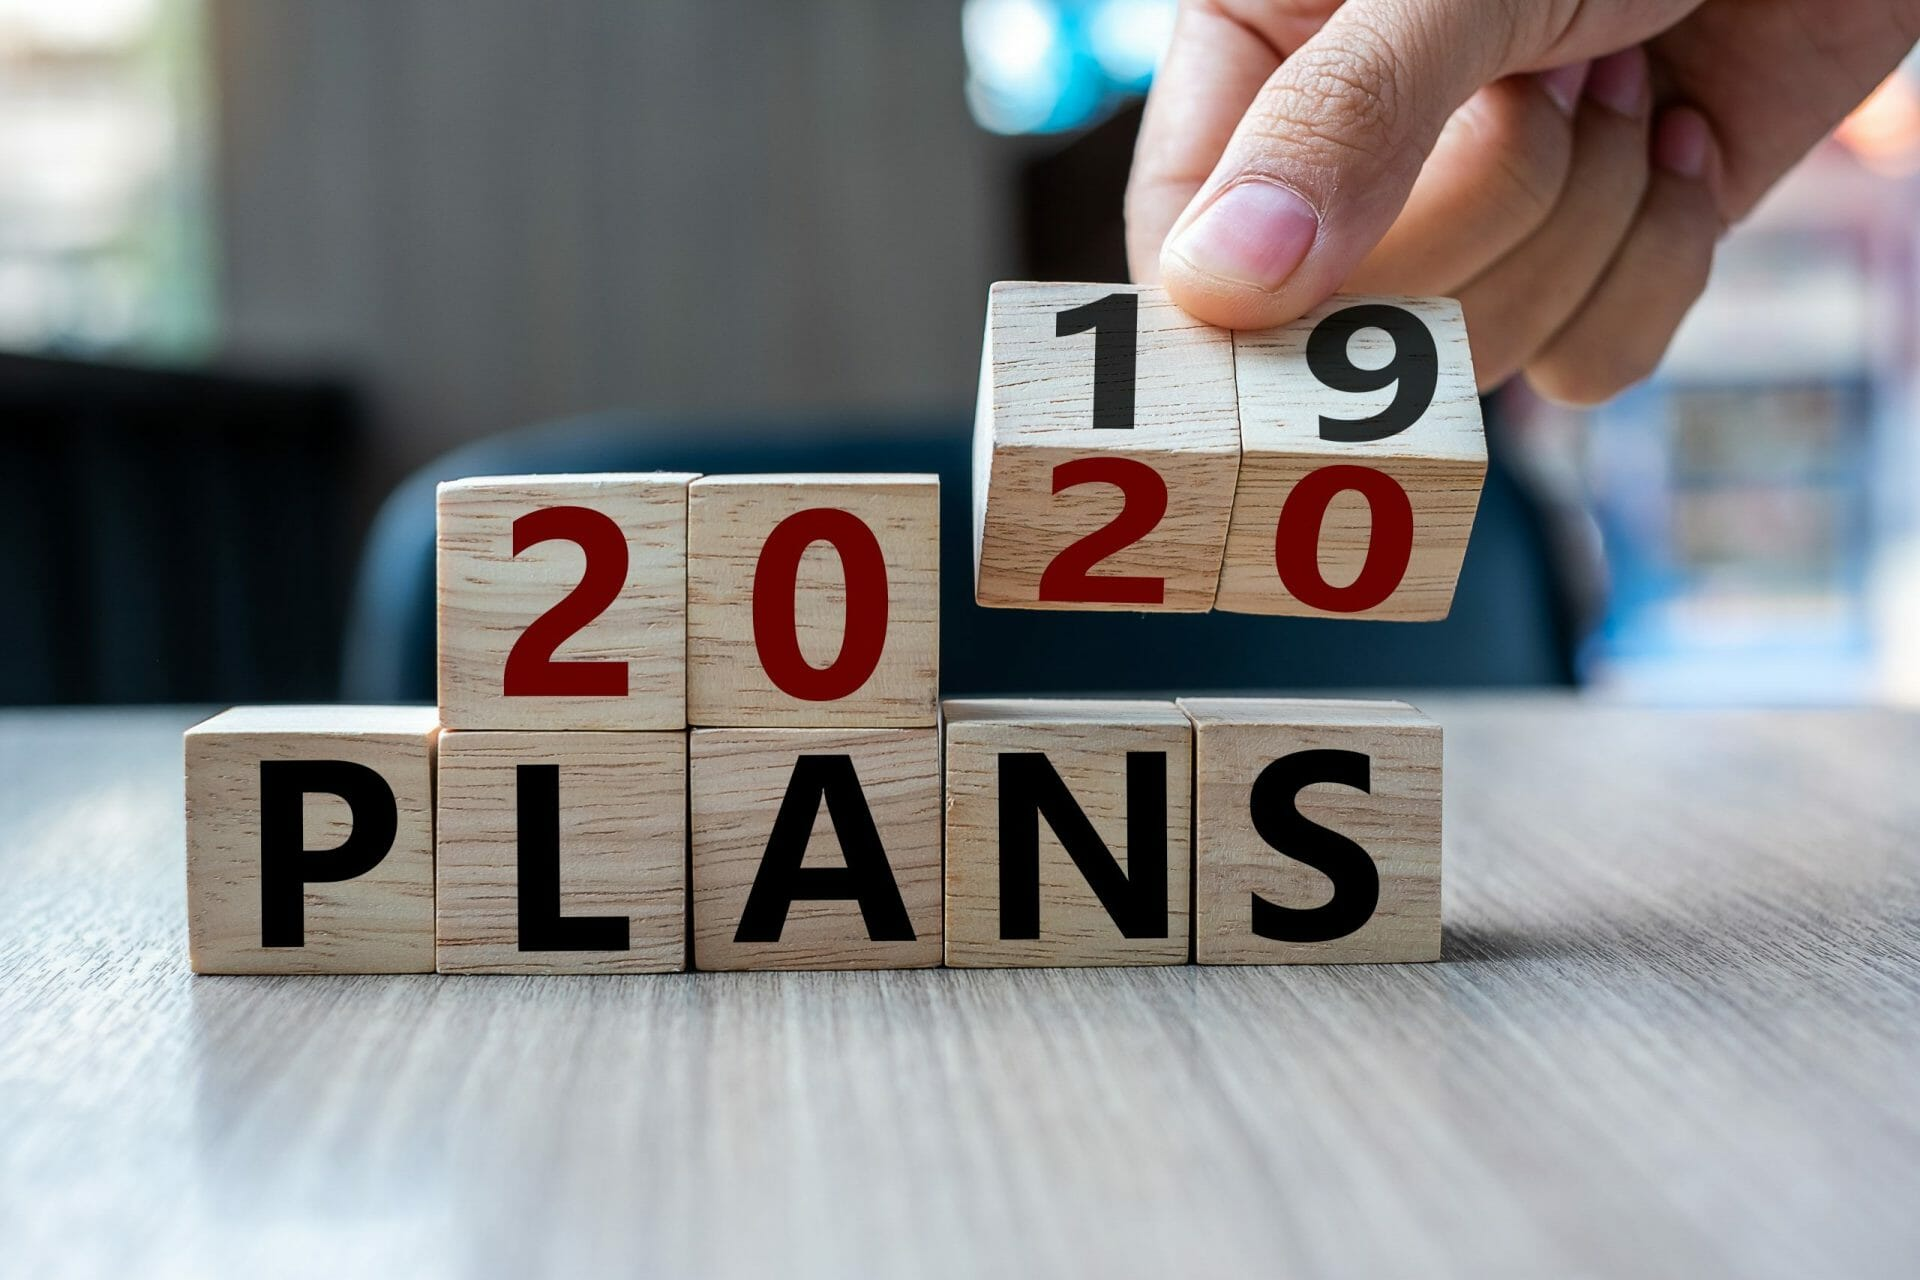 2019 to 2020 plans